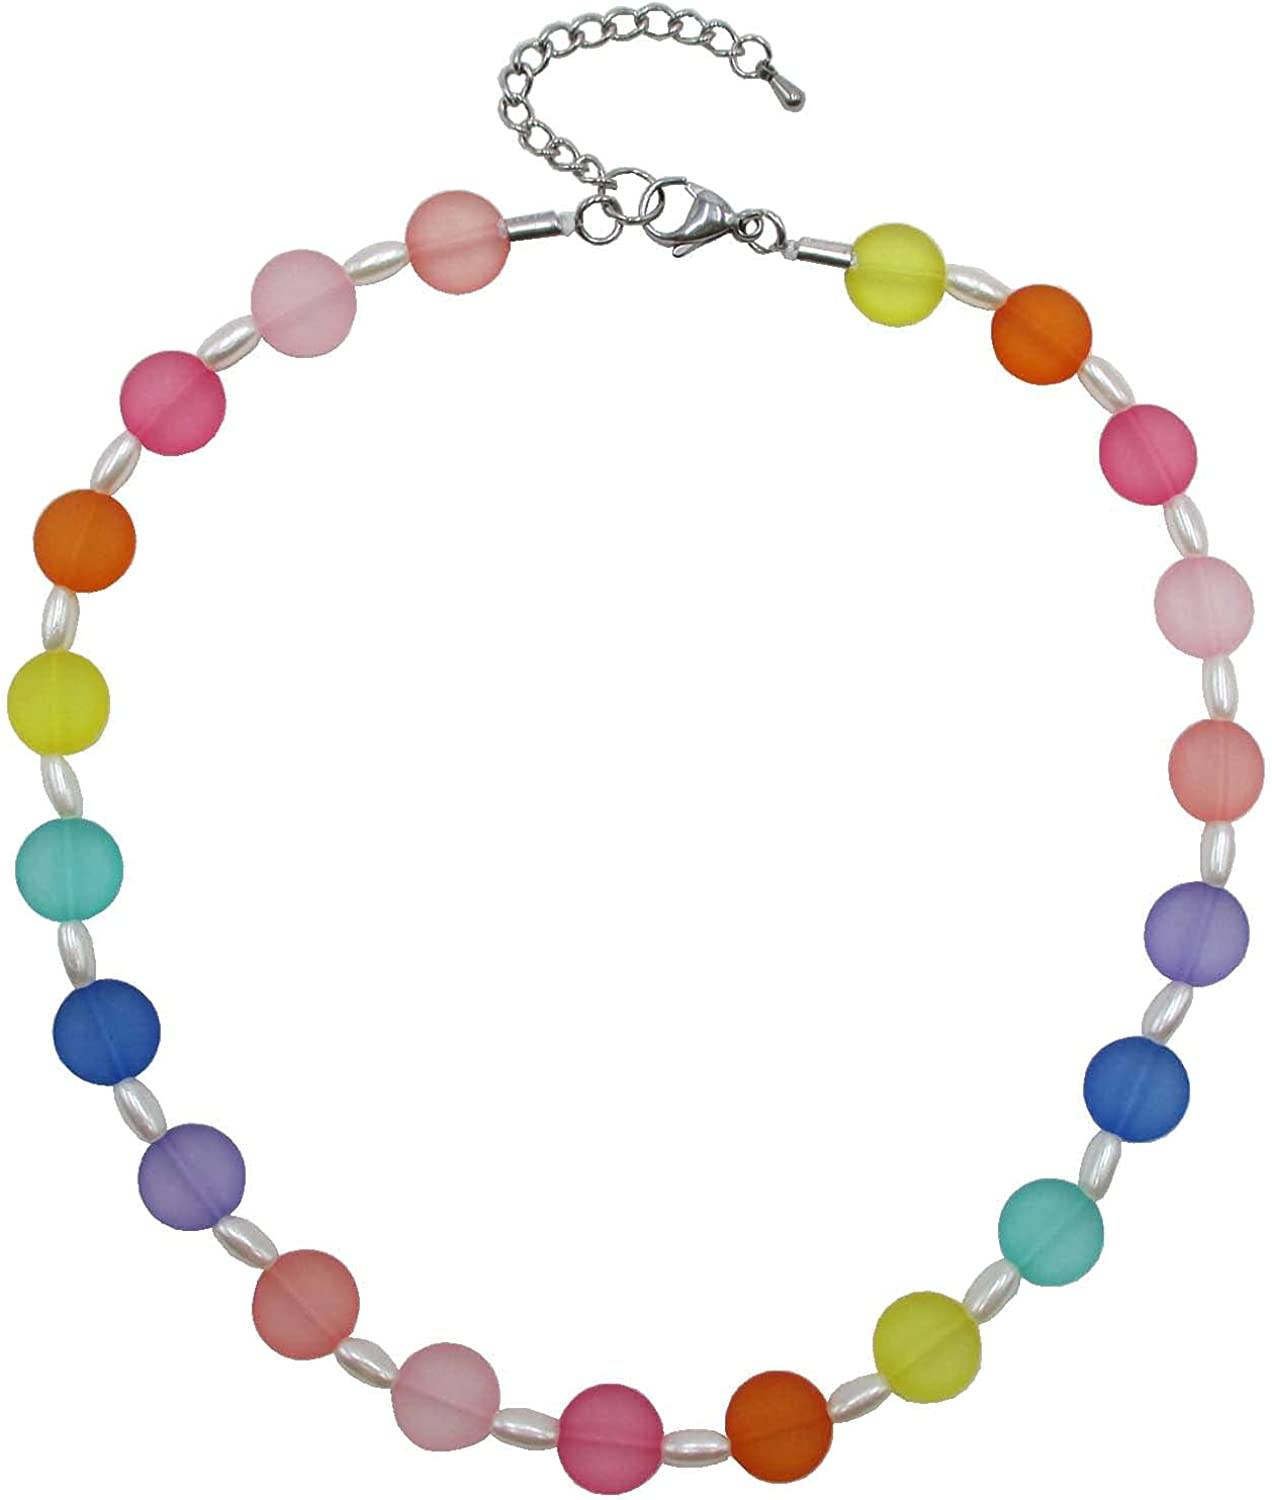 Trimscraft Statement Necklace Collar Choker Jewelry for Women and Girls